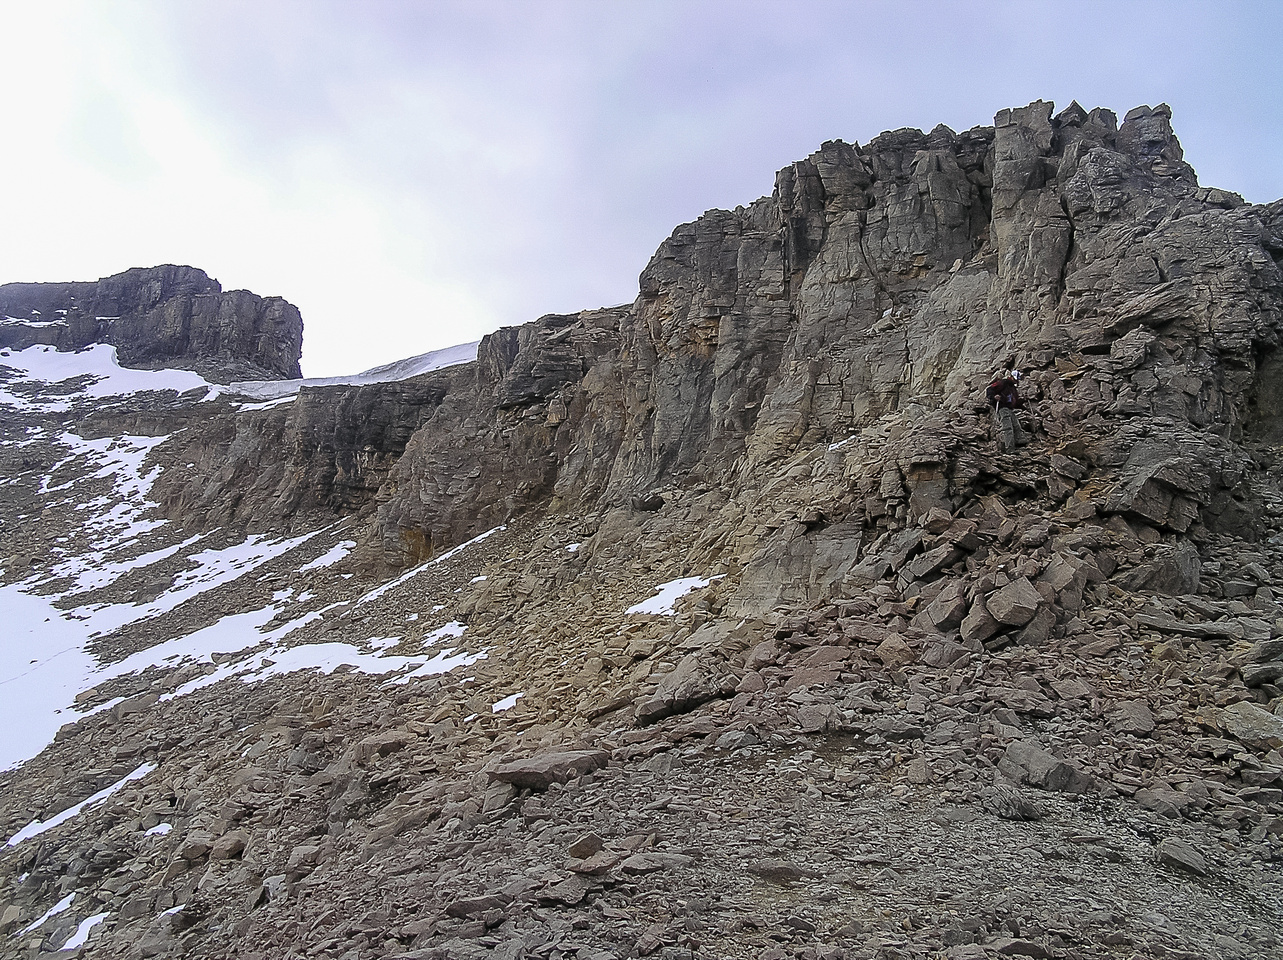 Across the bowl, looking up the NW ridge to the summit.